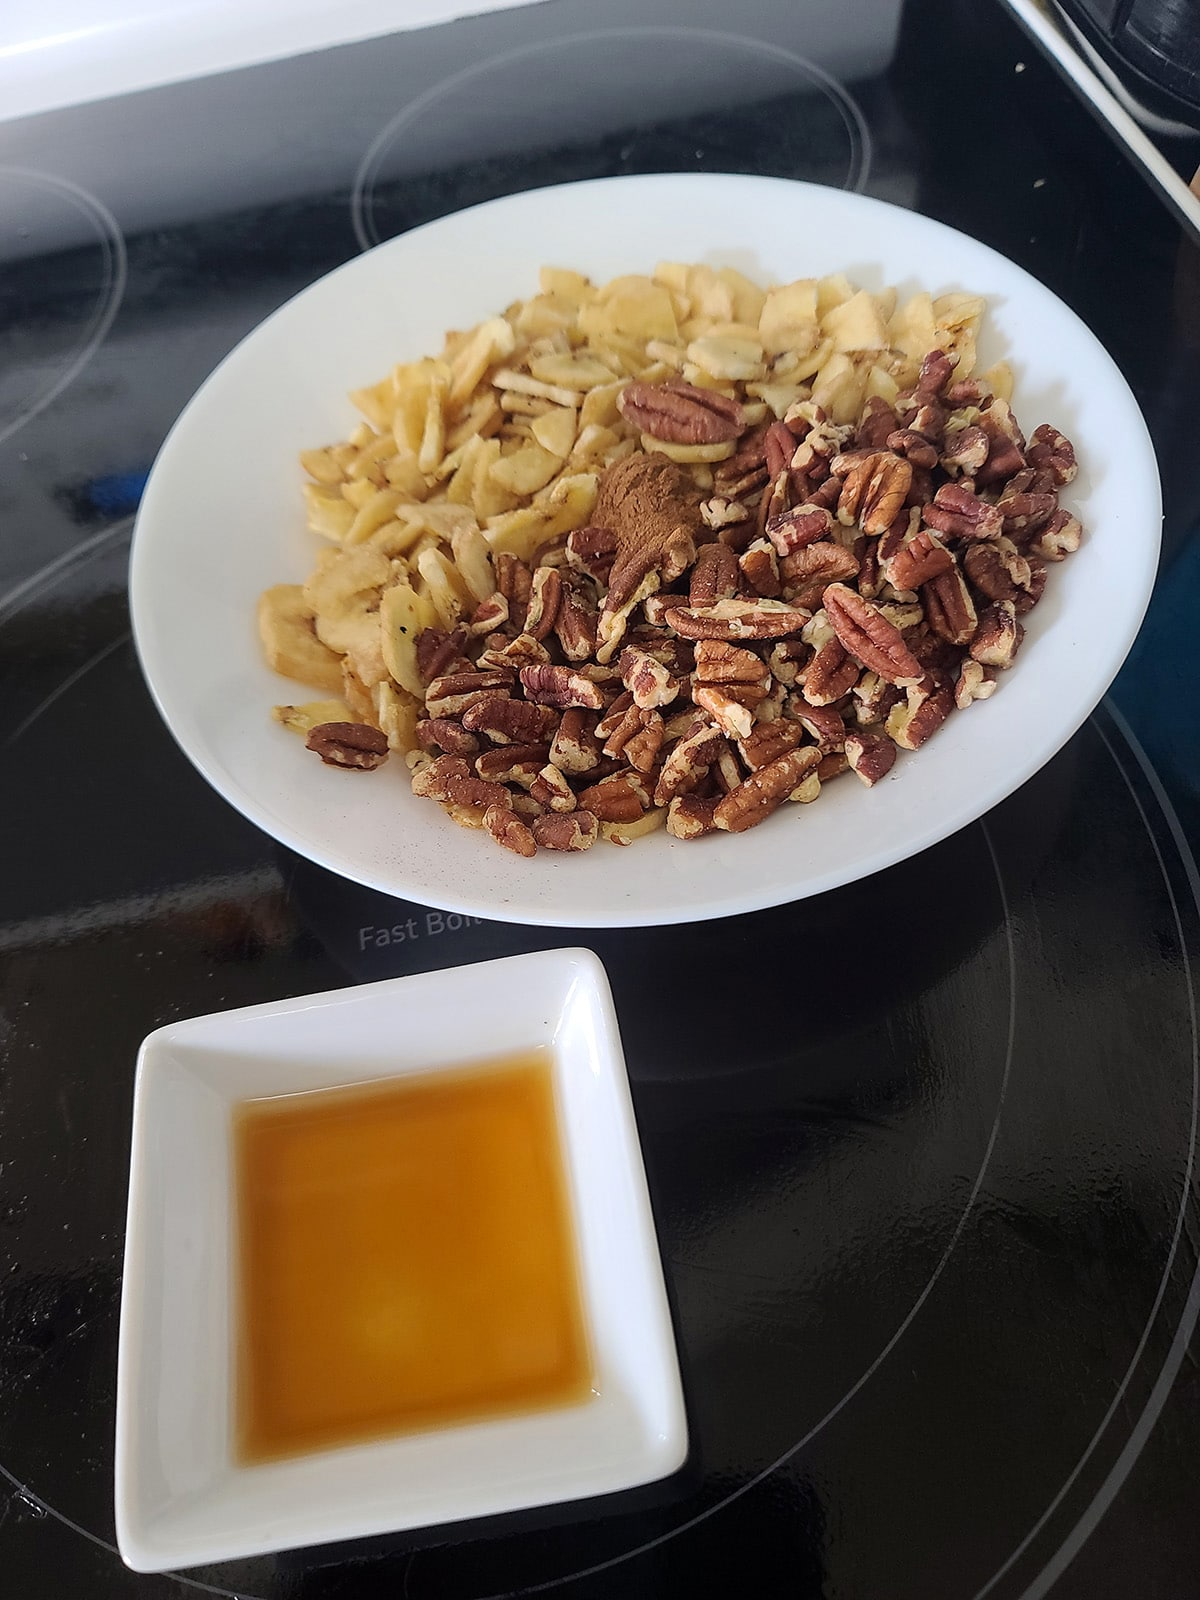 A bowl of pecans, banana chips, and cinnamon,  next to a small bowl with the extracts measured into it.